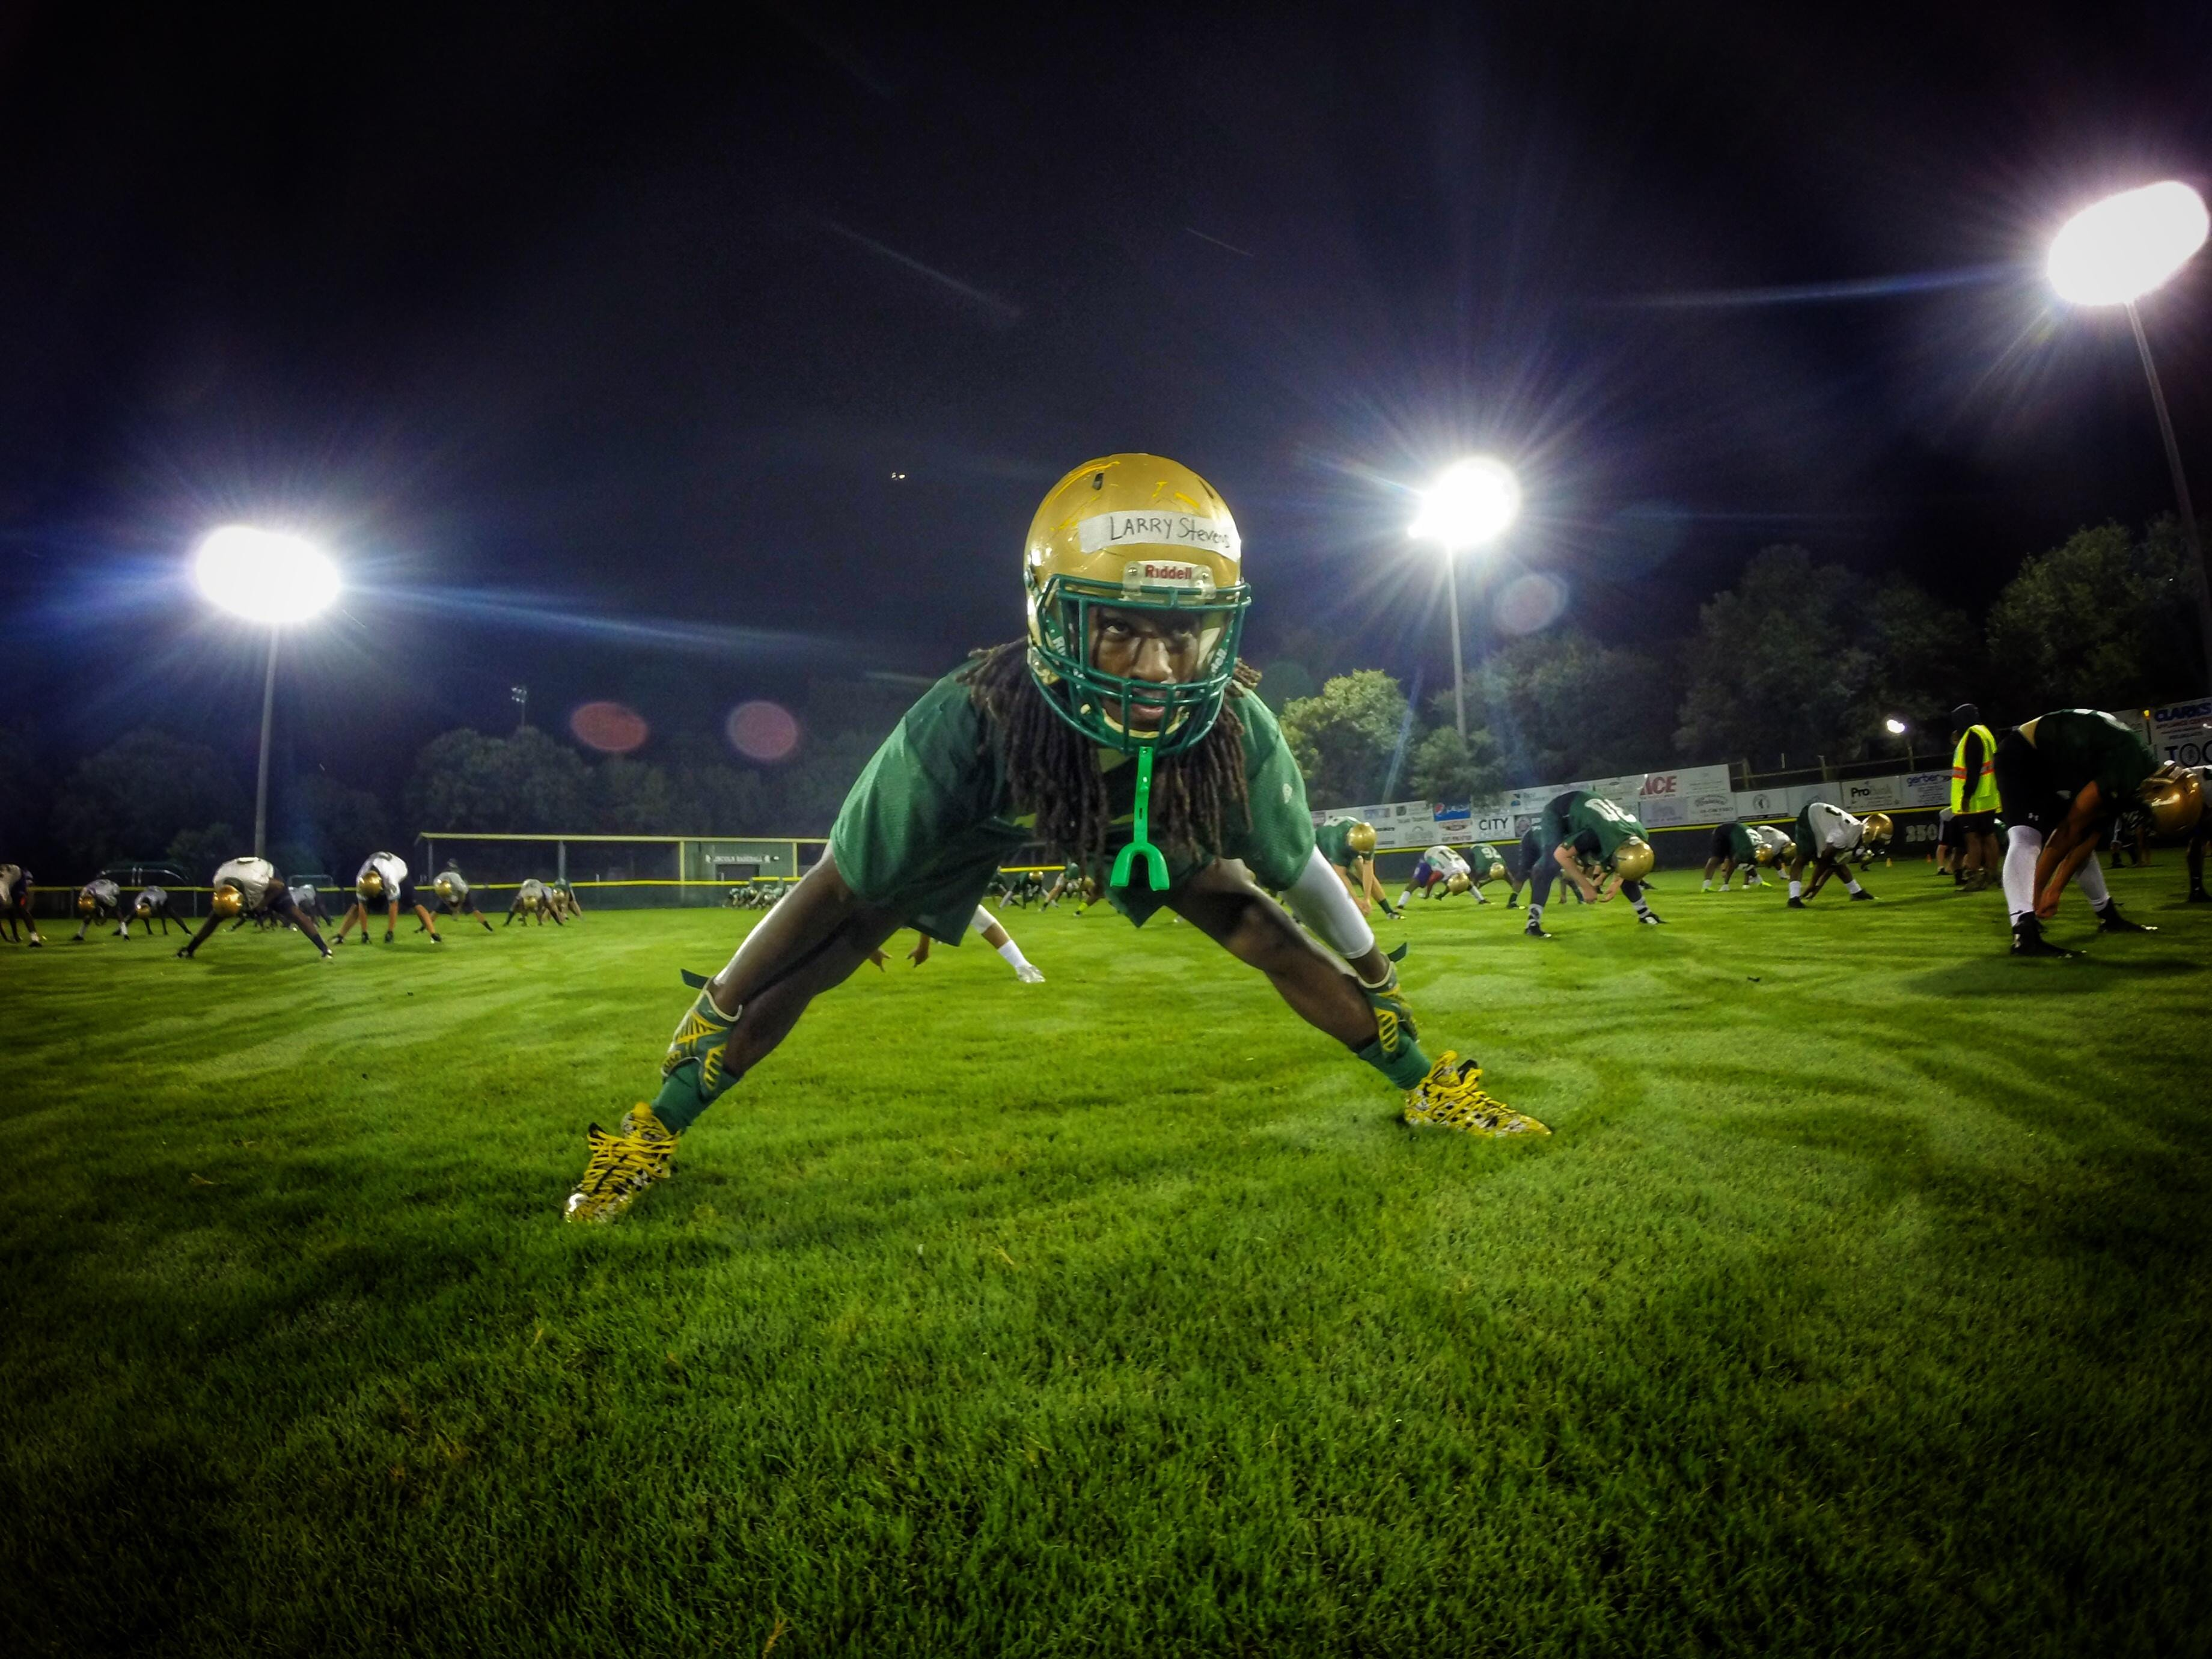 Lincoln defensive back Larry Stevens stretches with his teammates as part of the Trojans' Midnight Madness practice, a tradition since 1991 that marks the start of the fall football season.